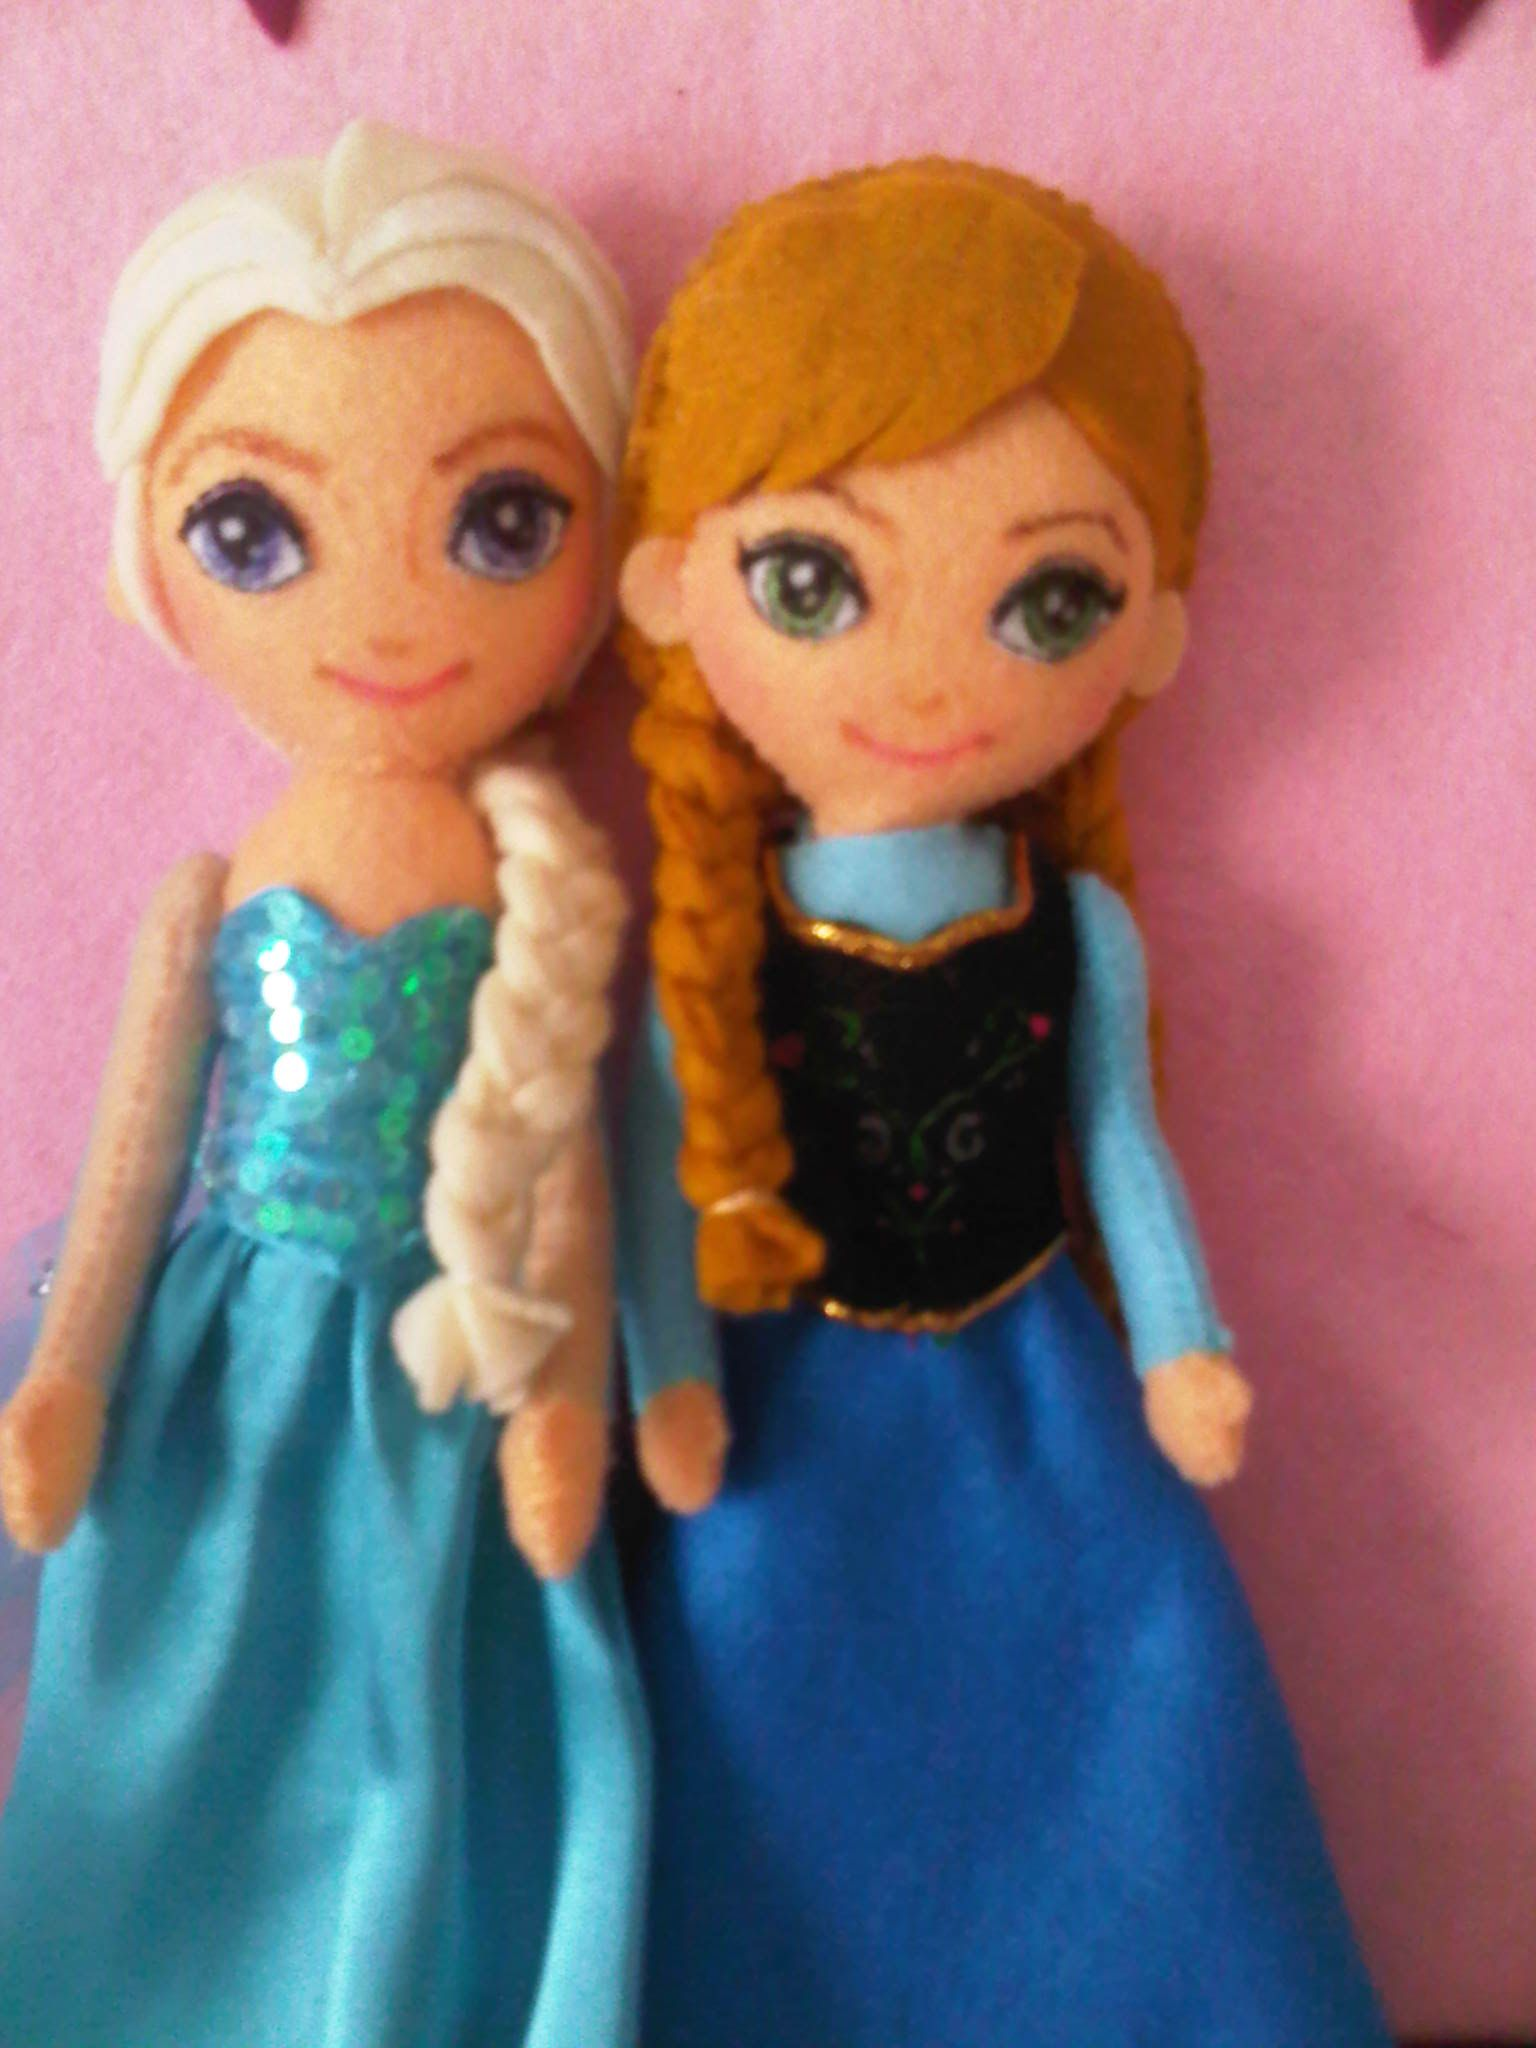 Elsa and Anna felt dolls | Frozen | Pinterest | Die eiskönigin ...